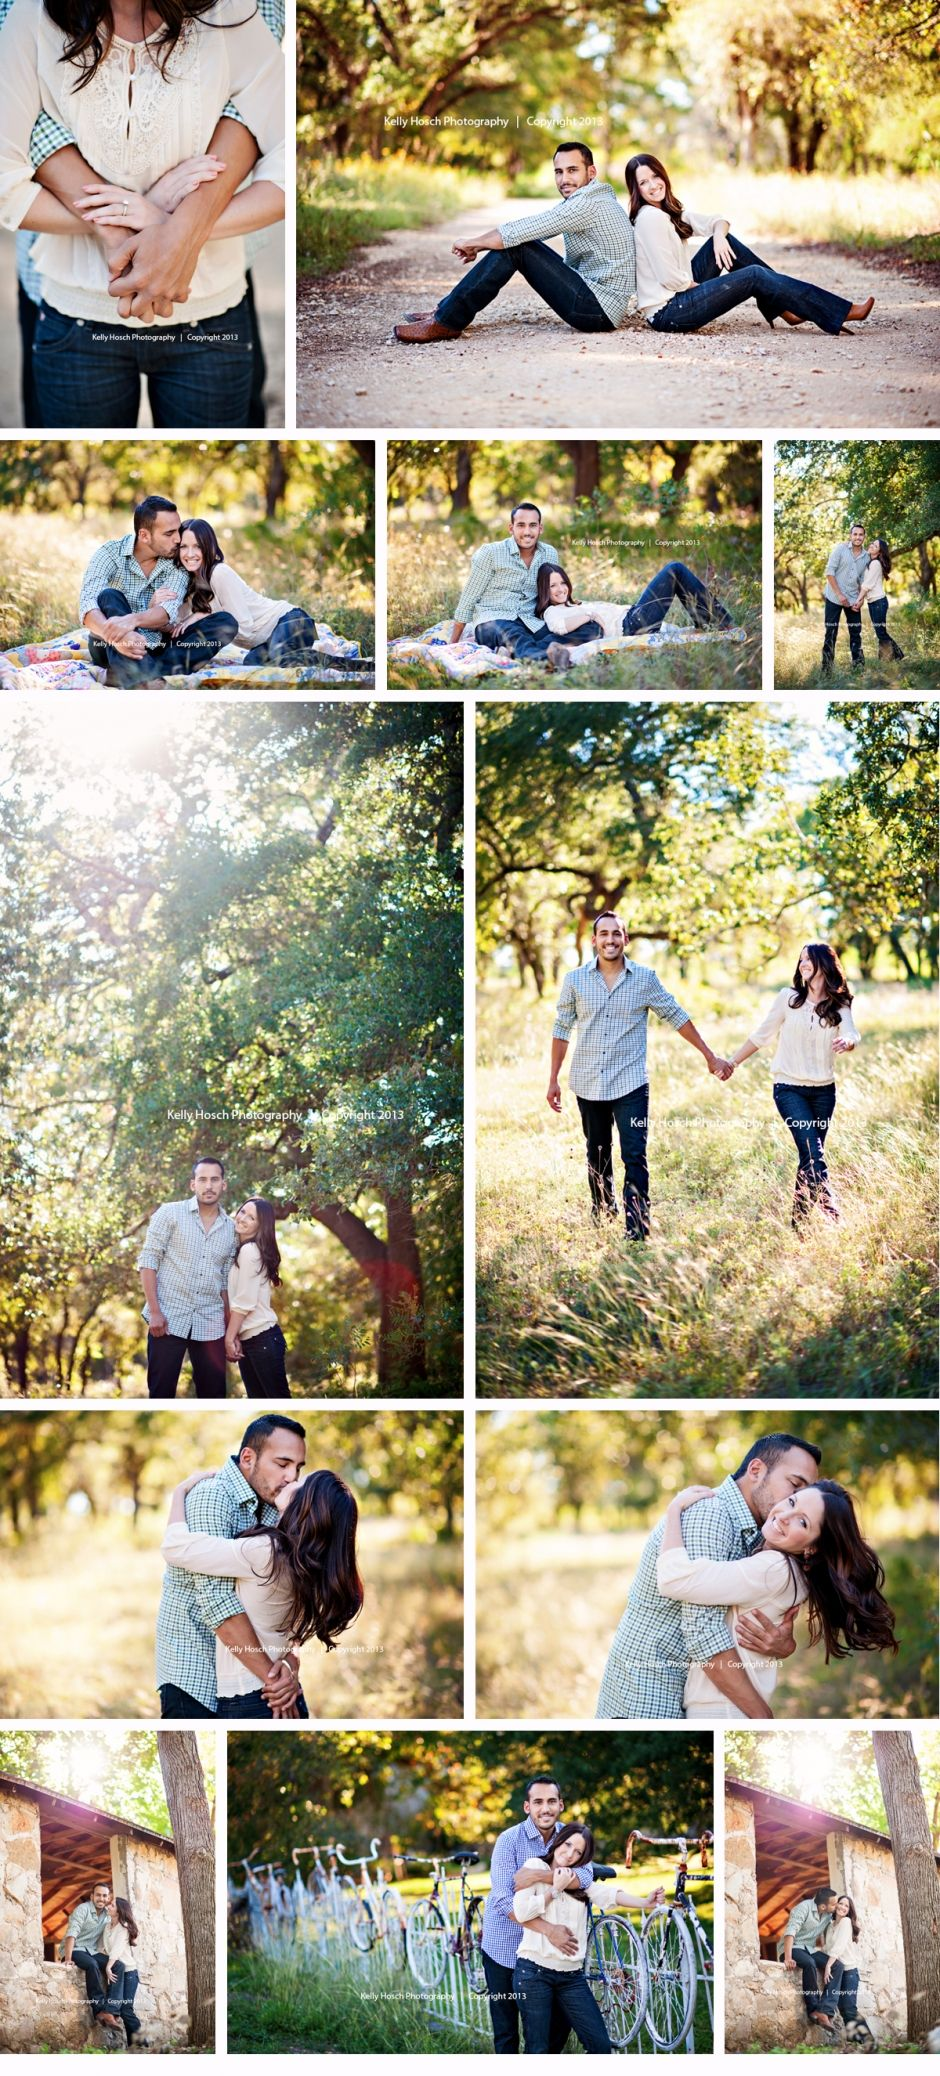 I want an outdoor engagement session with a vintage look